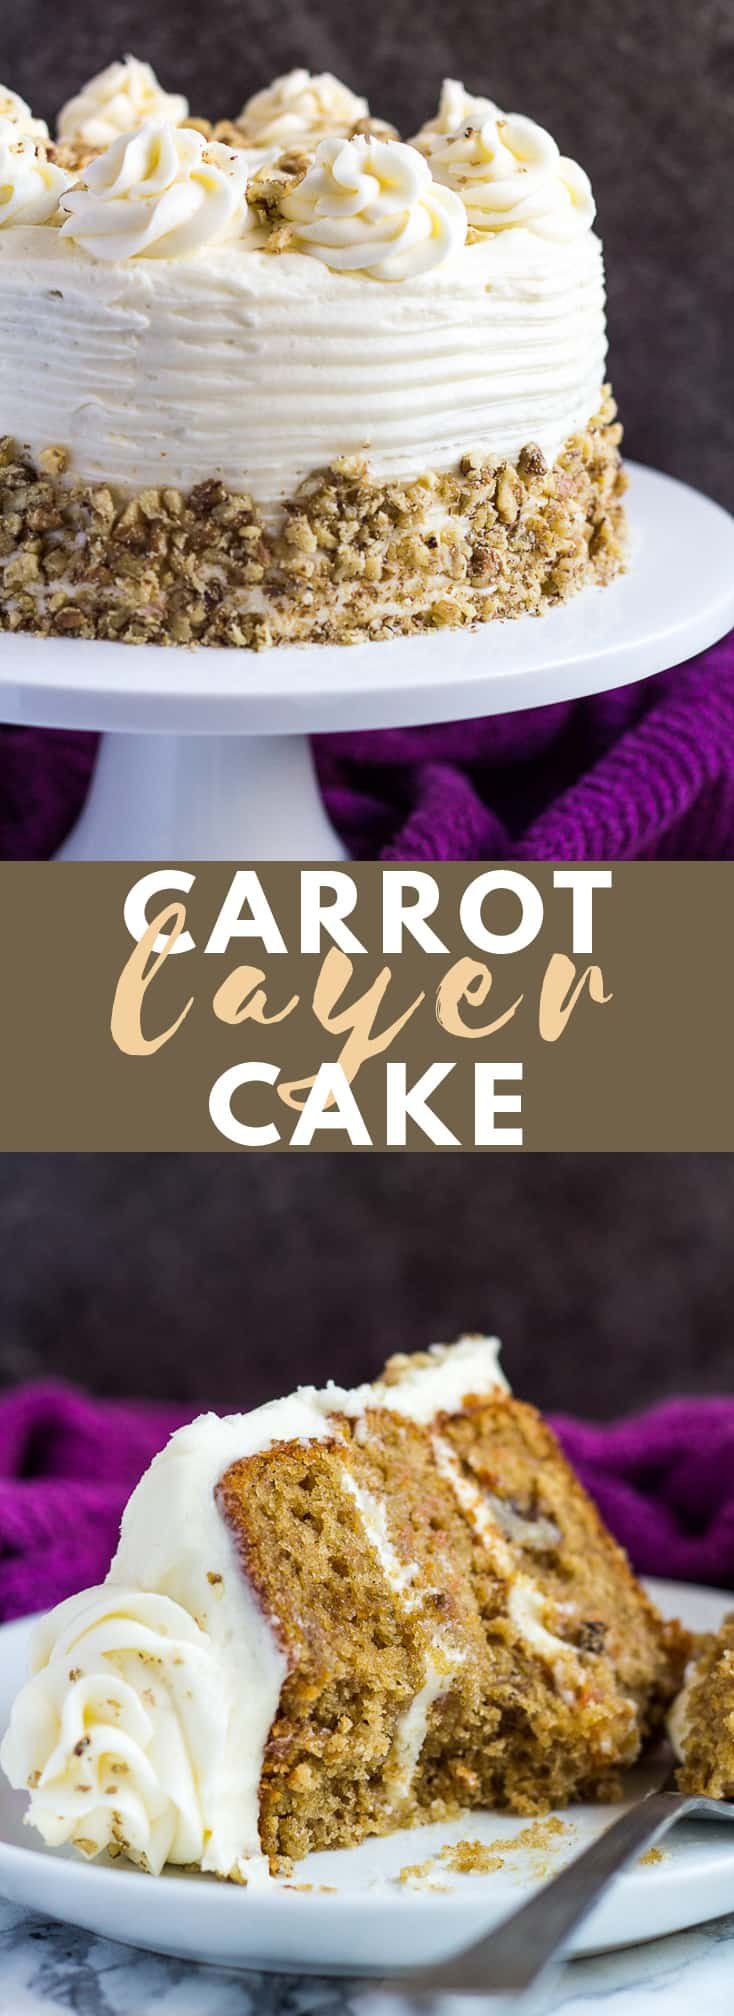 Carrot Layer Cake - Incredibly moist and fluffy carrot cake that is infused with spices, loaded with carrots and nuts, and frosted with a cream cheese buttercream! #carrotcake #cake #cakerecipes